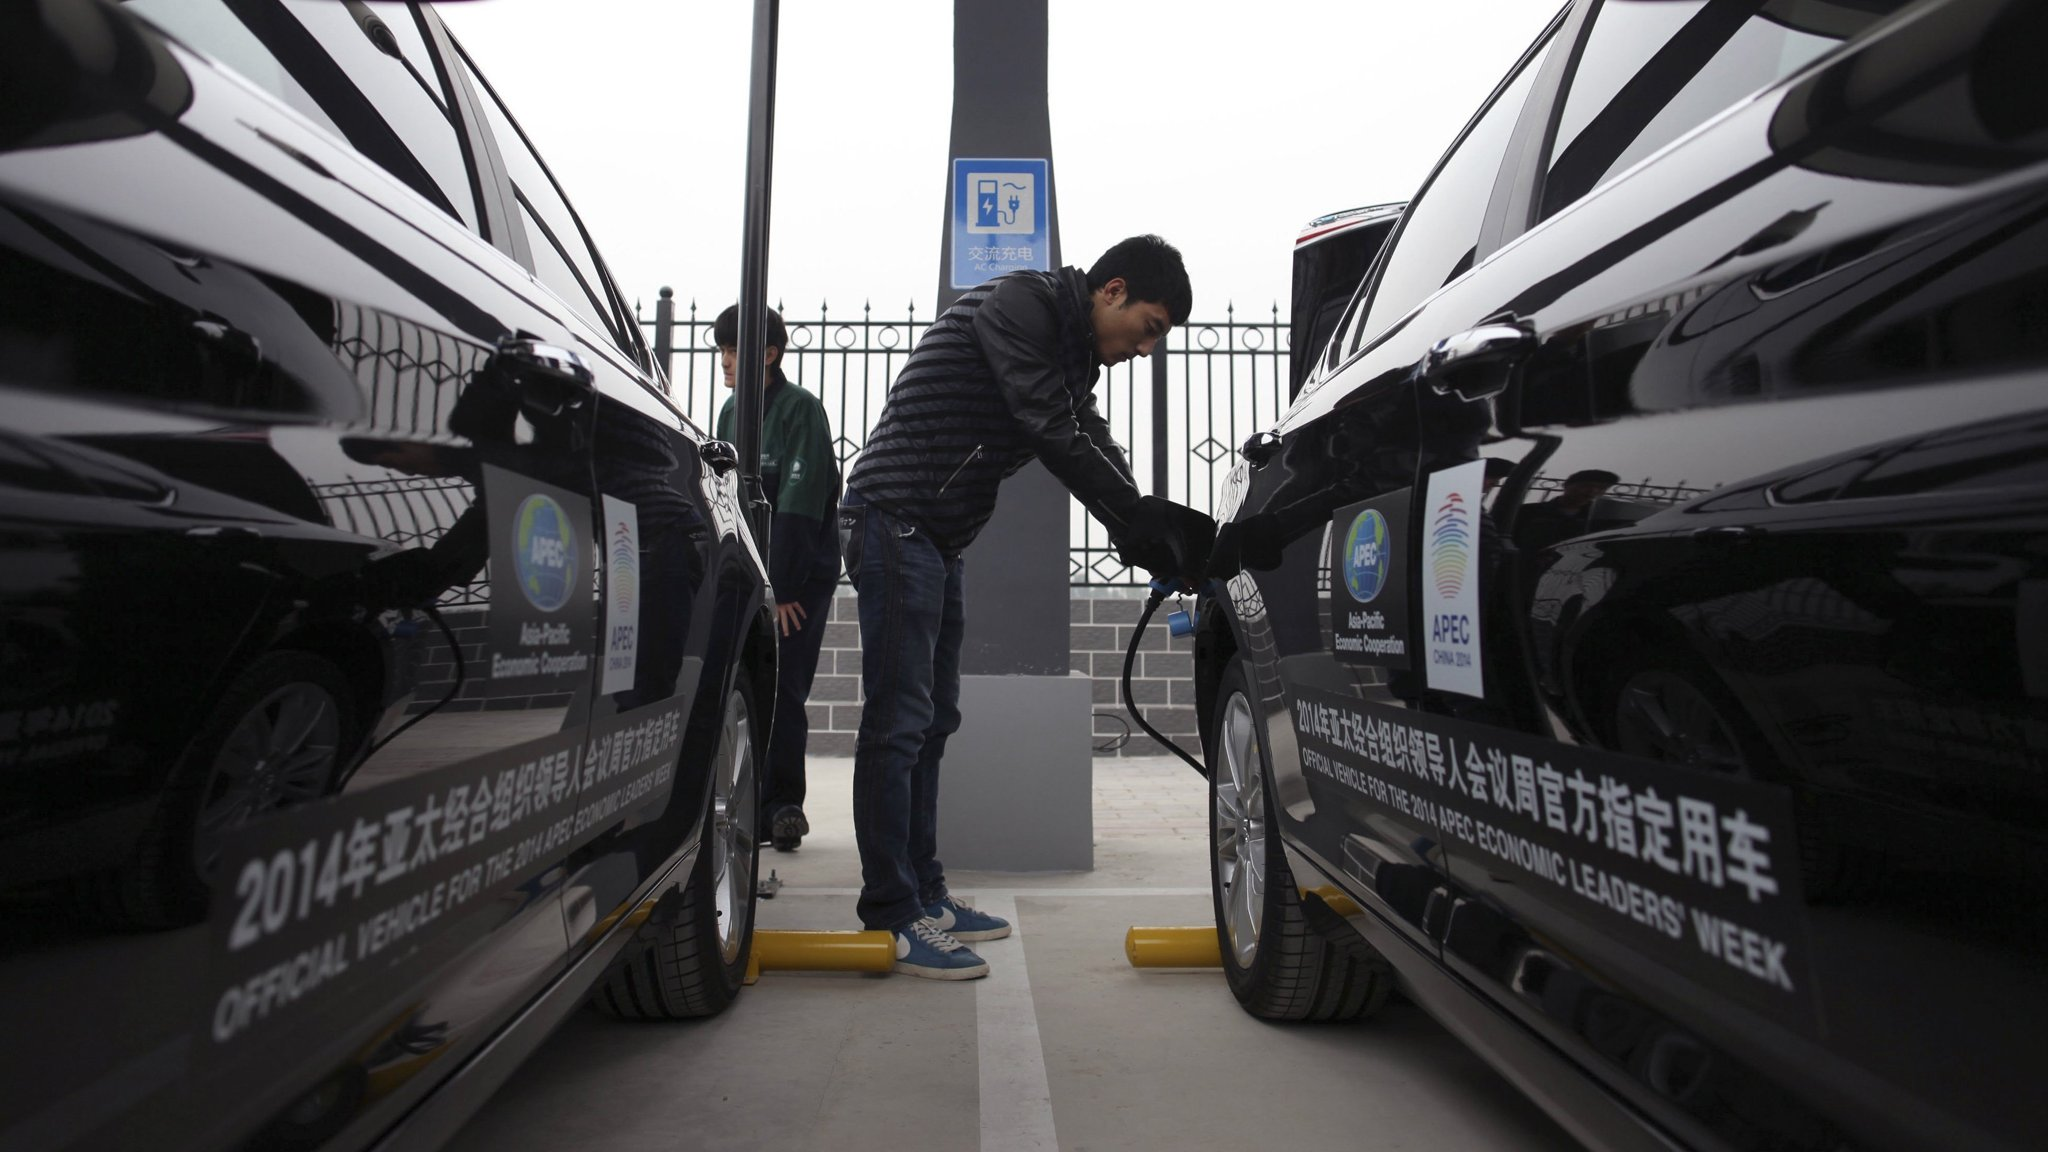 Pollution Studies Cast Doubt On Chinas Electric Car Policies Most Popular Ever Producedquot Financial Times